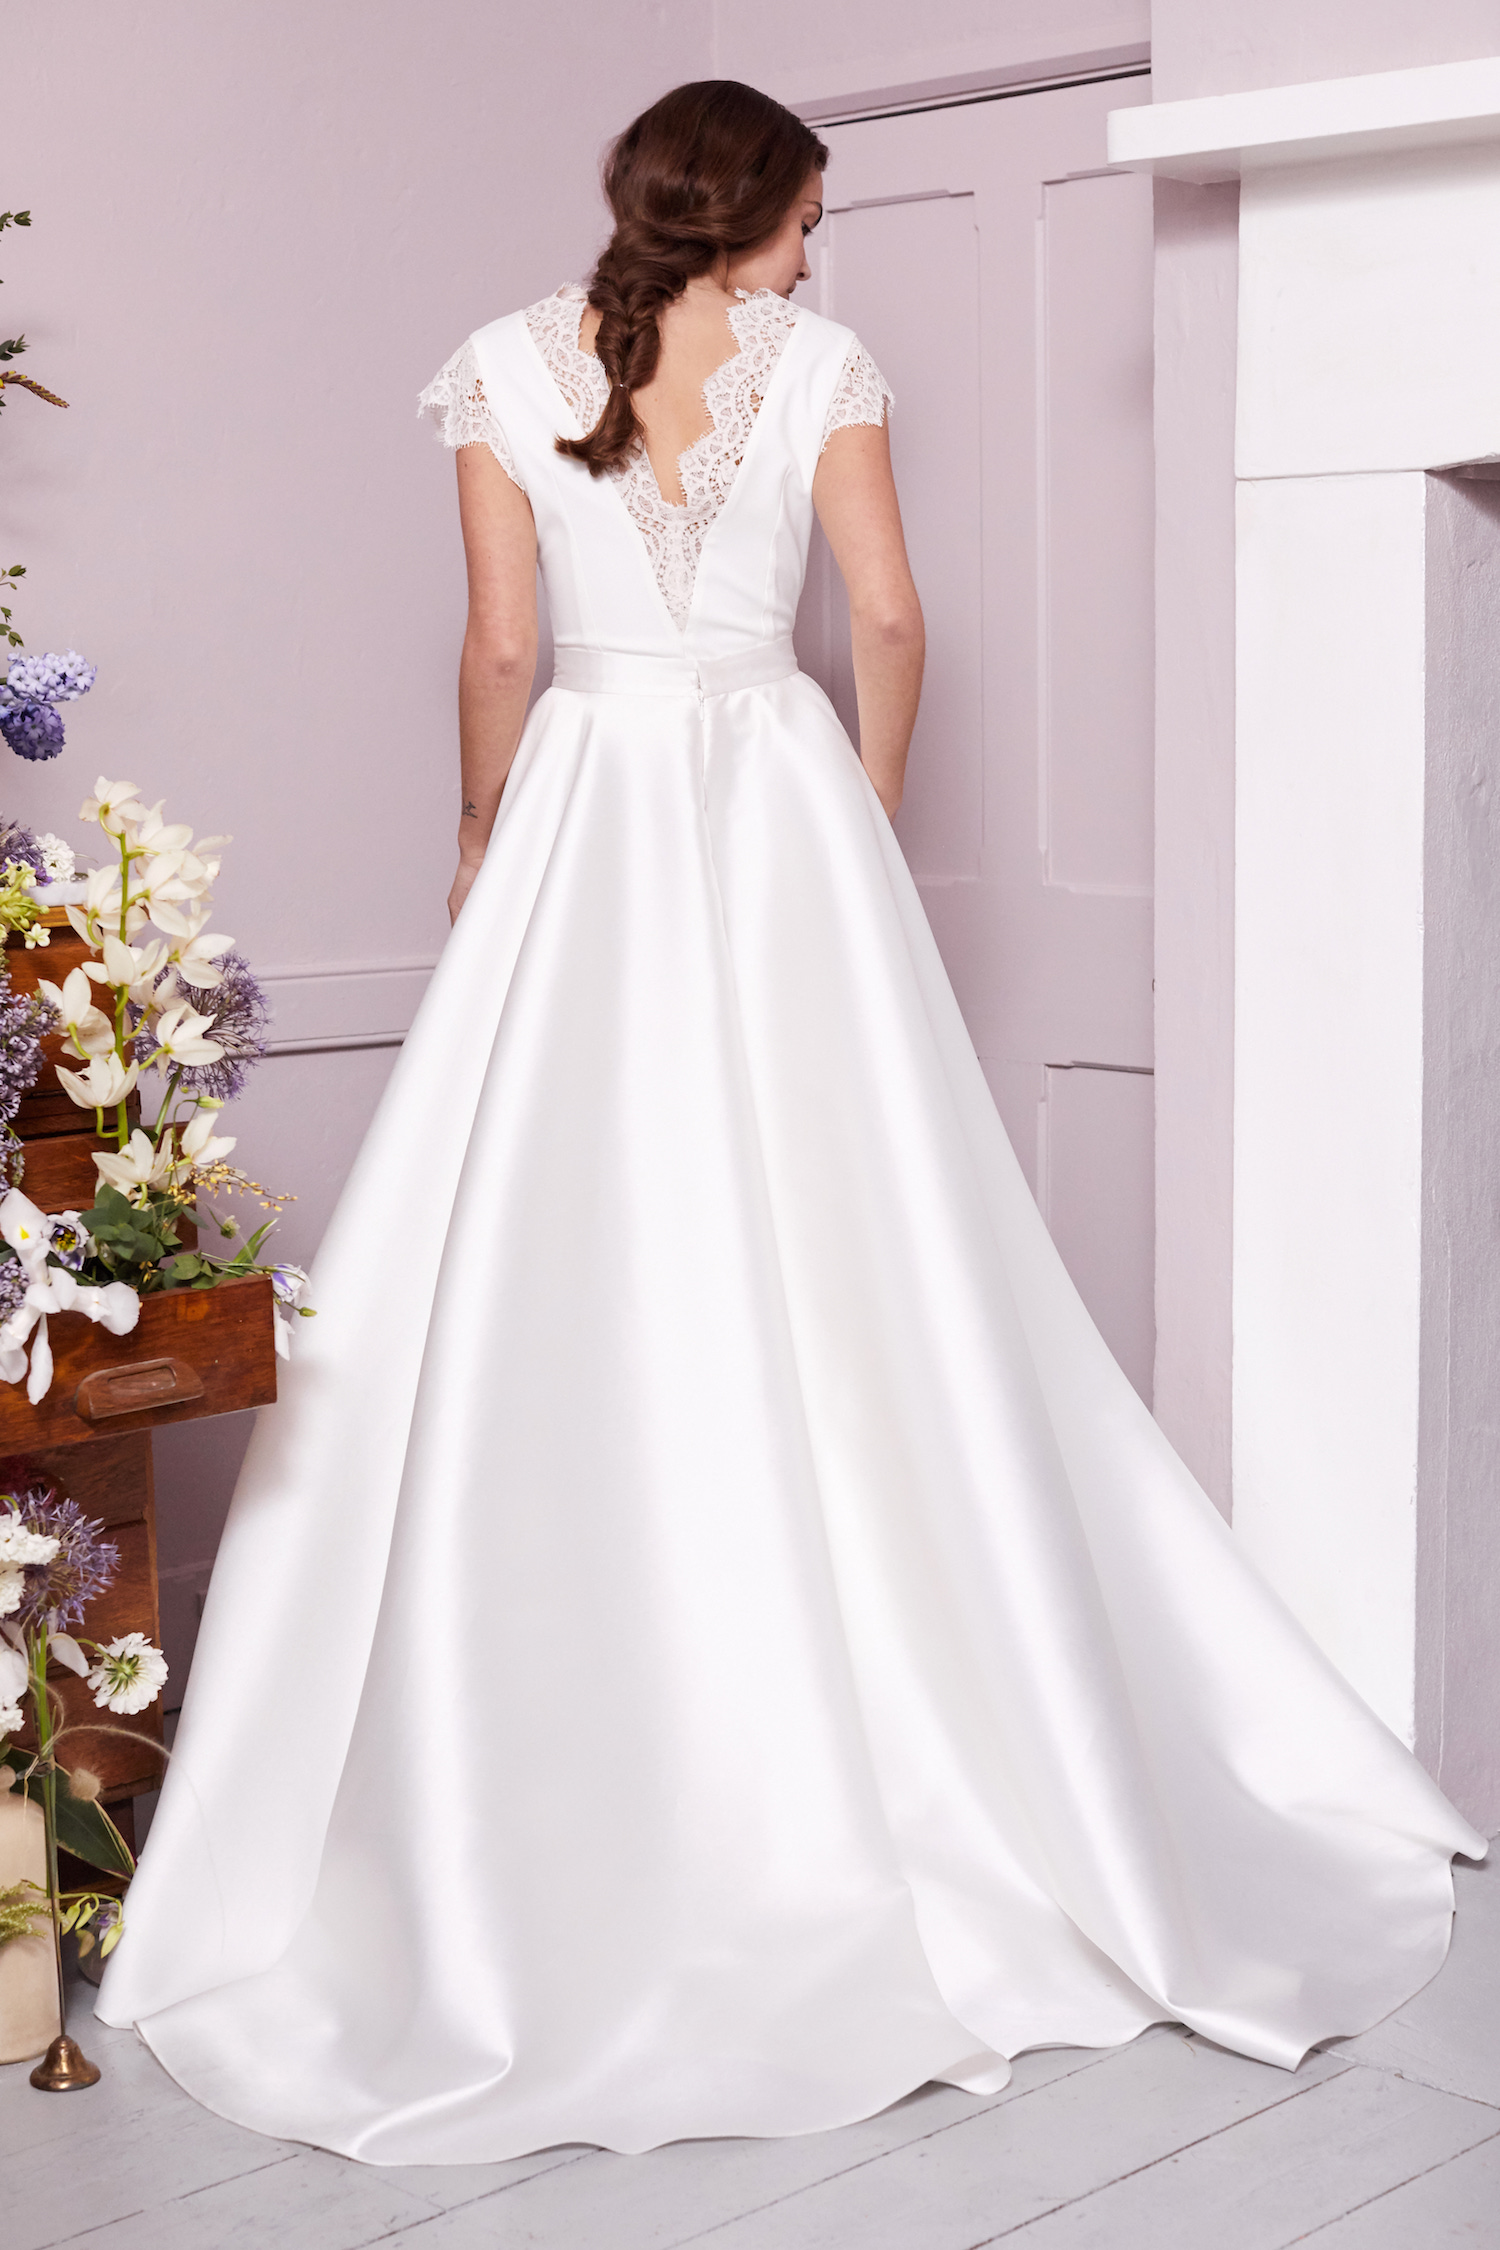 EMIN TOP & ELLIE SKIRT | WEDDING DRESS BY HALFPENNY LONDON